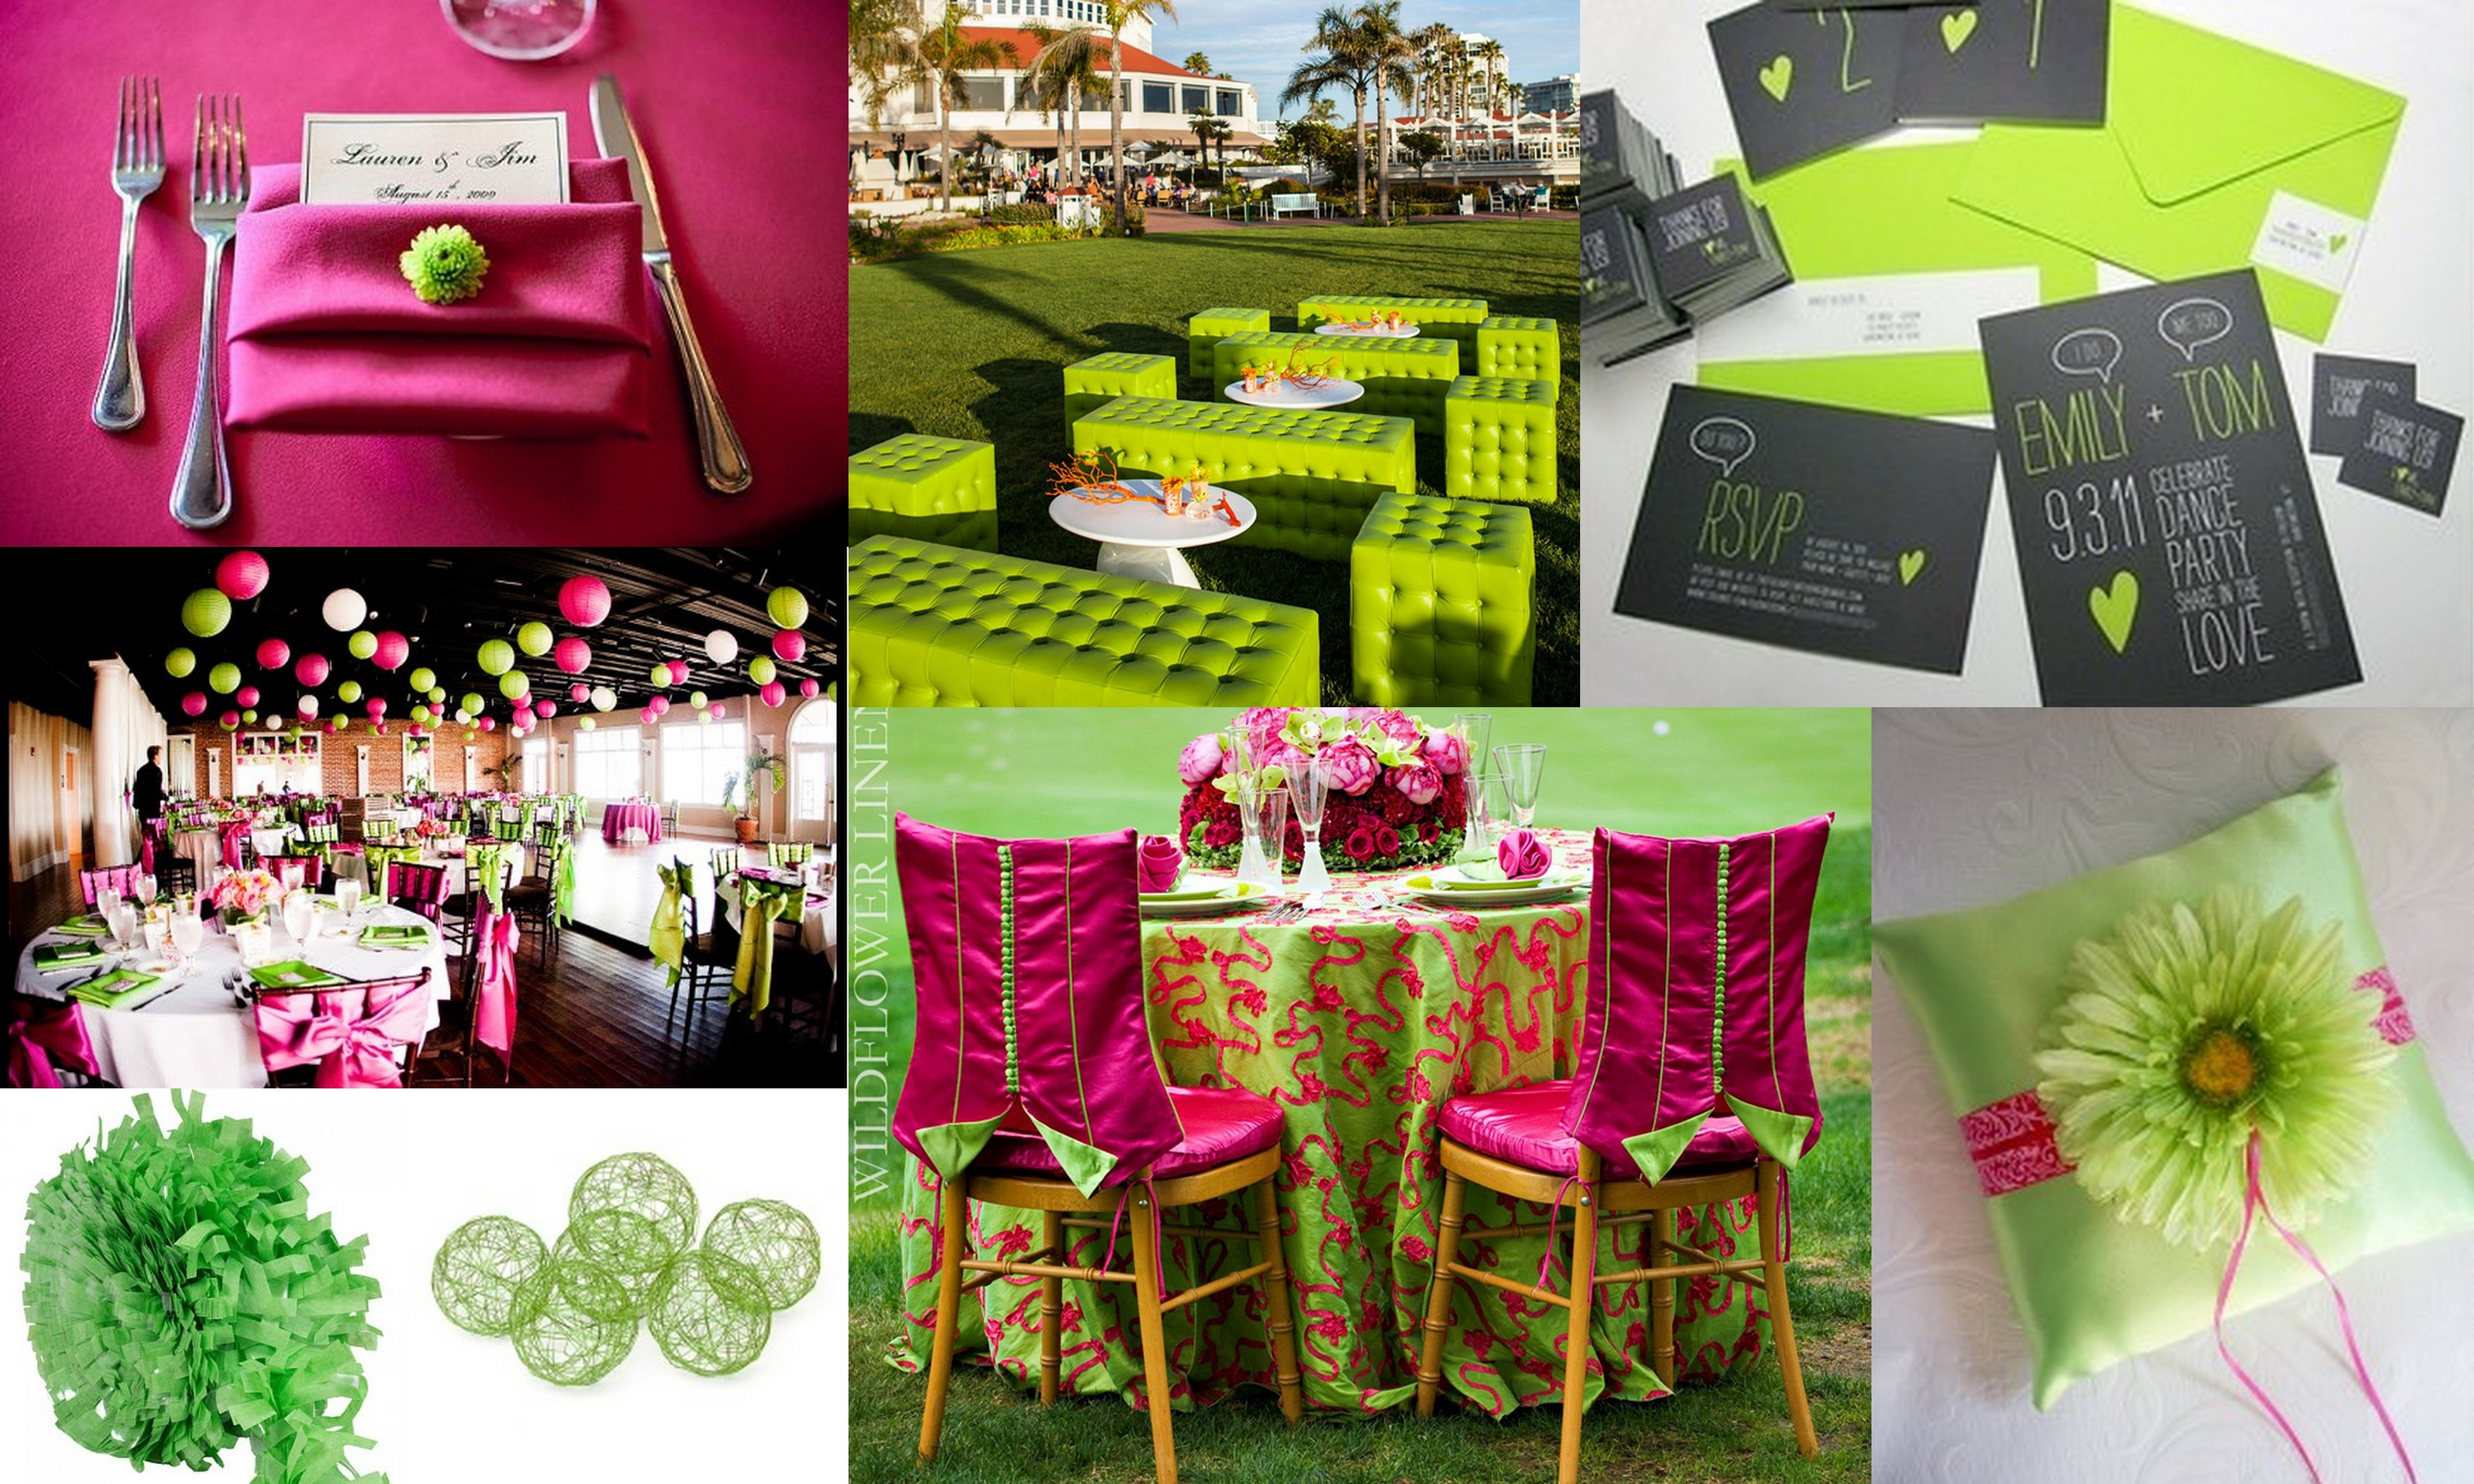 10 Awesome Pink And Green Wedding Ideas inspiration ideas pink wedding decorations with wedding ideas in 2020